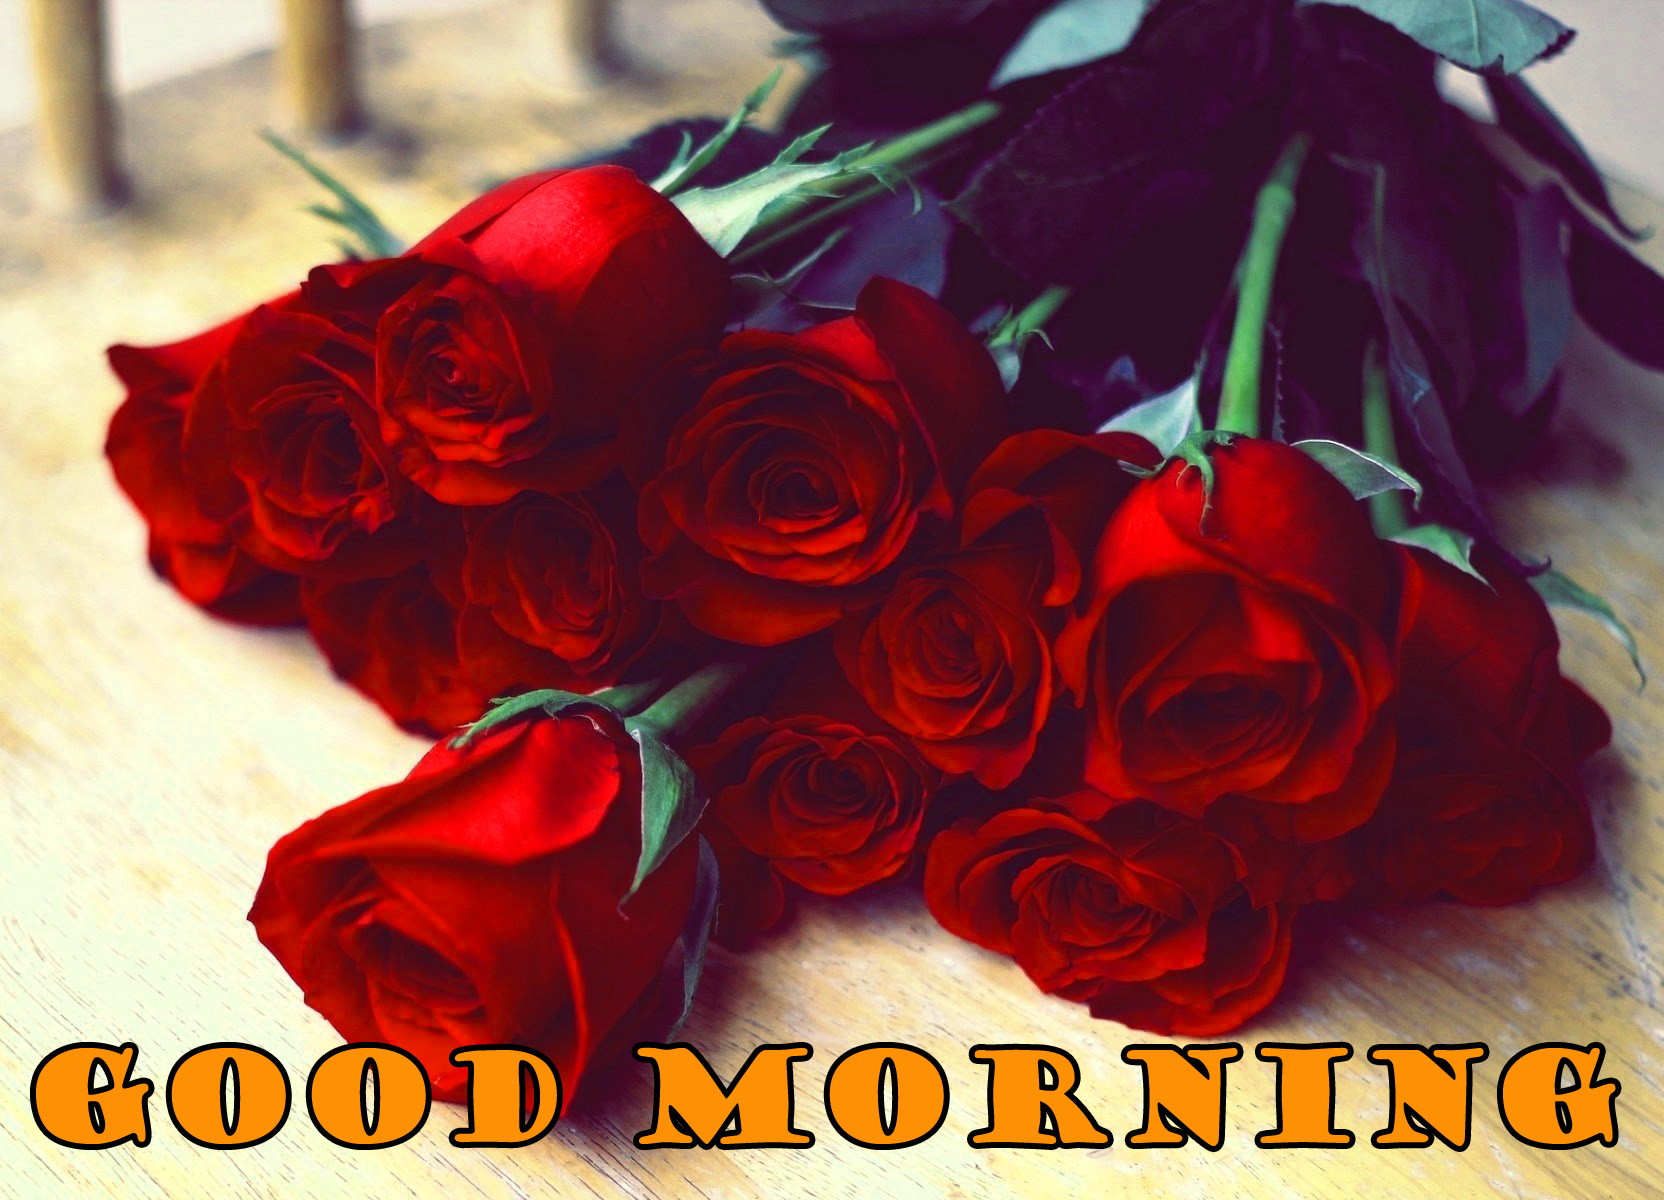 Good Morning Red Rose Pictures Wallpaper For Facebook